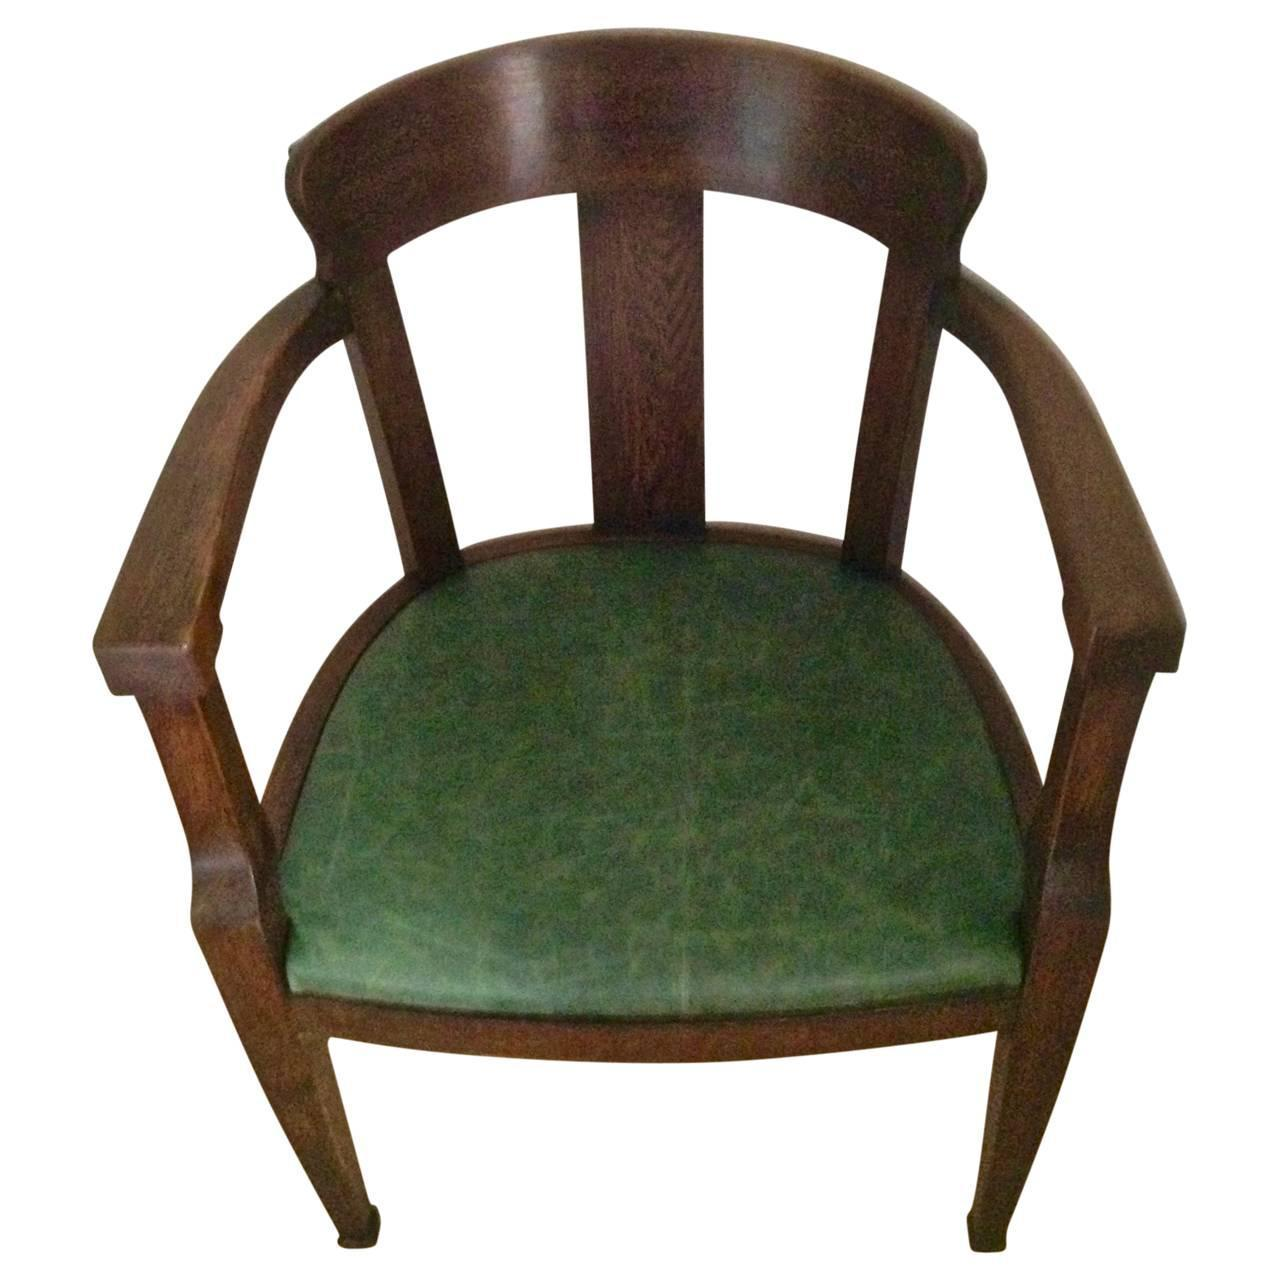 img chairs for sale indoor swing chair bedroom early solid oak art deco desk at 1stdibs